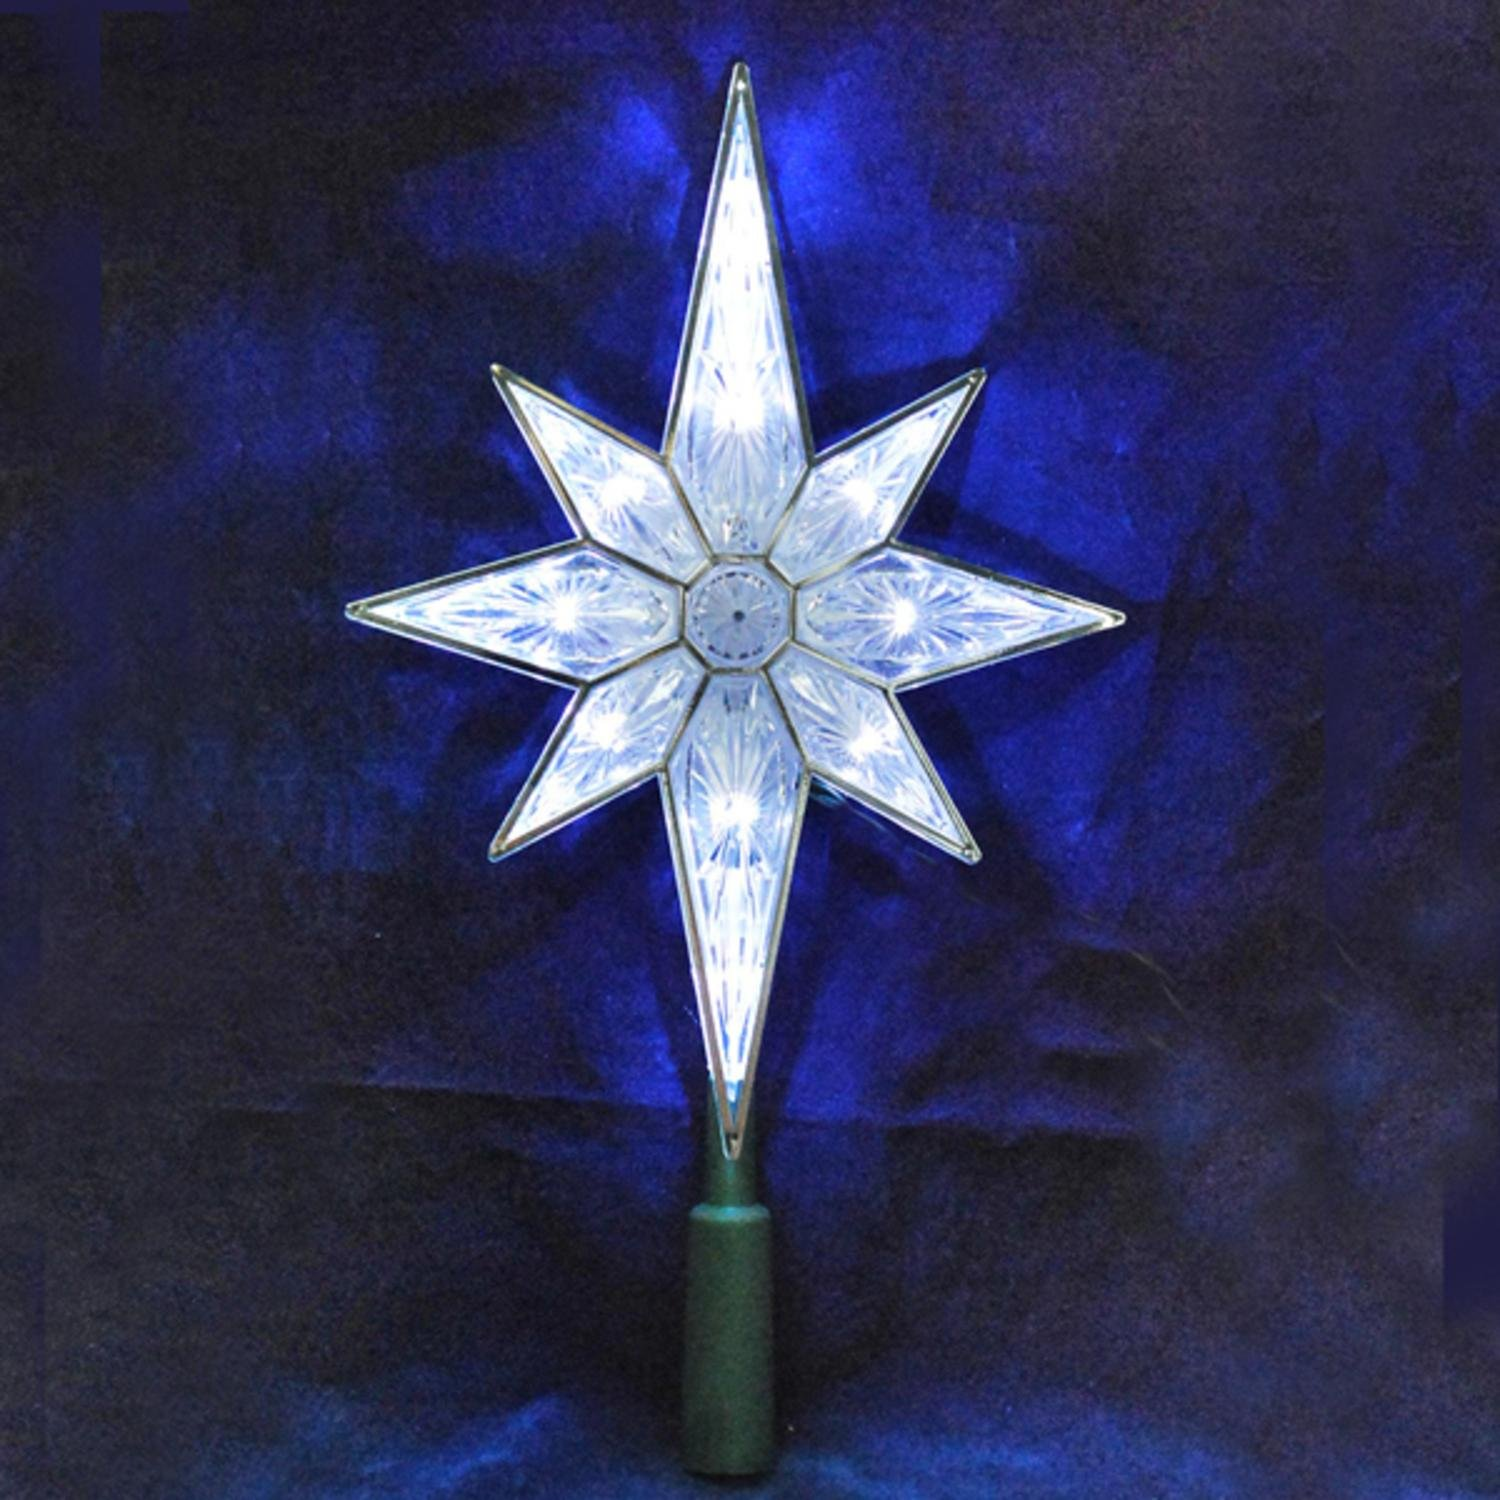 10.5 LED Lighted 8-Point Star of Bethlehem Christmas Tree Topper - Pure White Lights Kurt Adler BLZ-36832